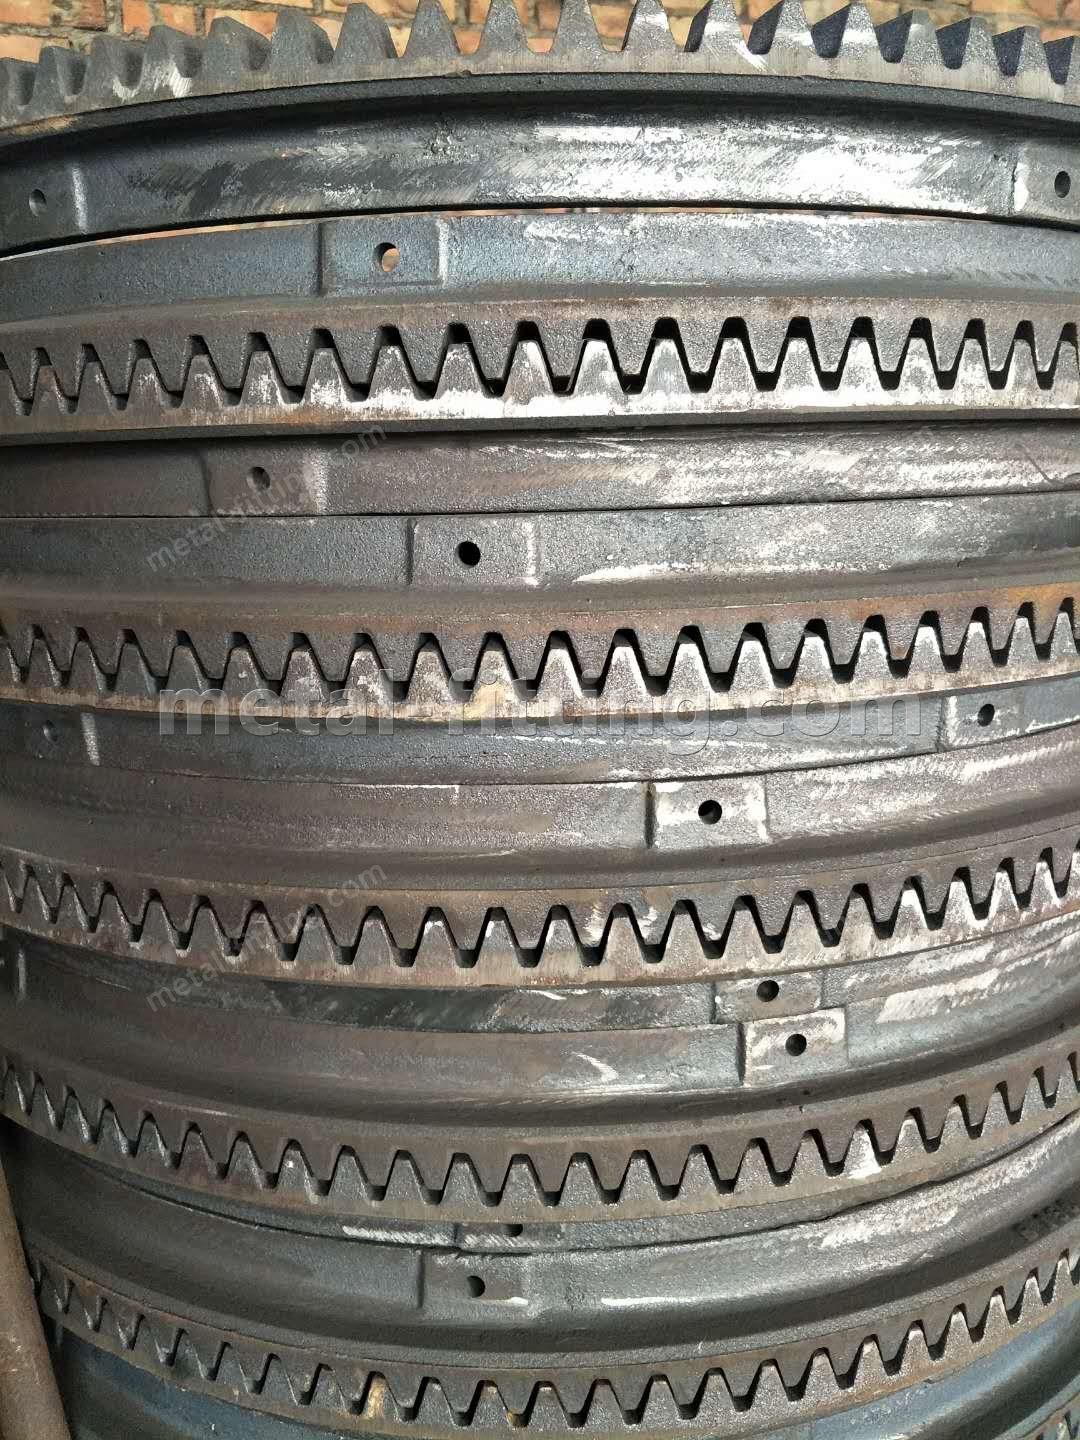 Casted iron Ring Gear and Pulley for concret Mixer-19702390350007395